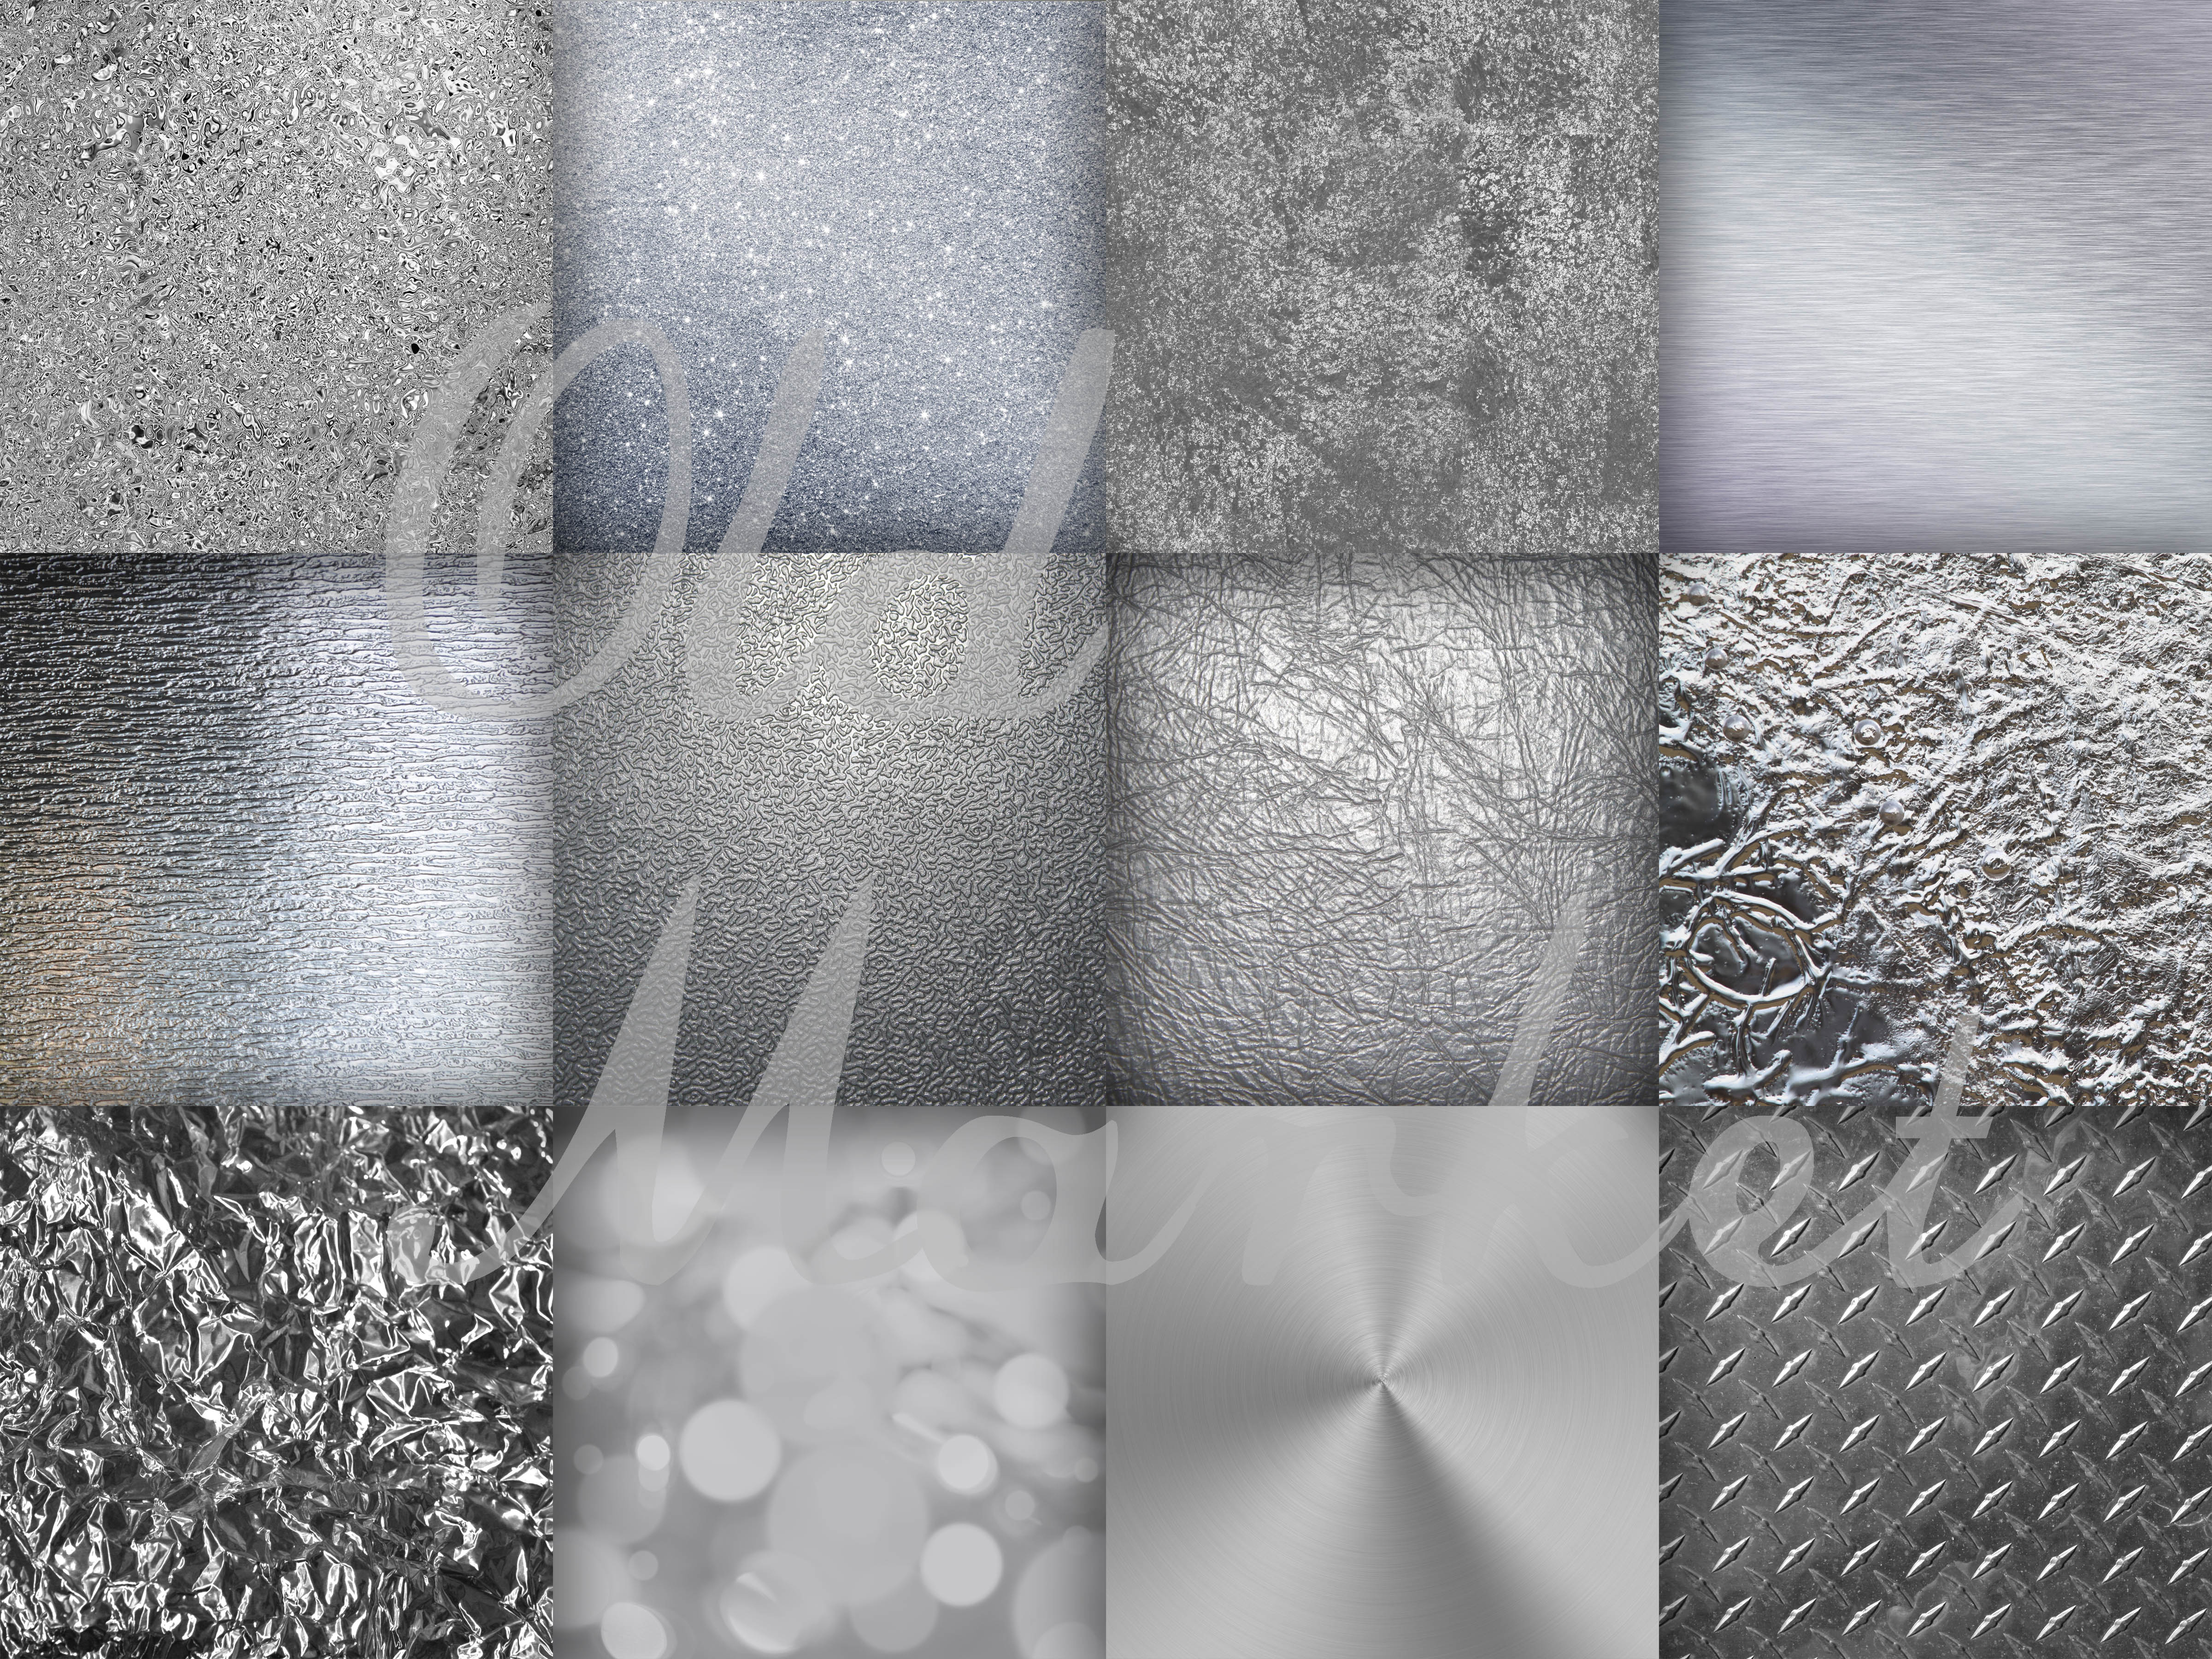 Silver Streak - Silver Digital Paper Textures Graphic By oldmarketdesigns Image 2